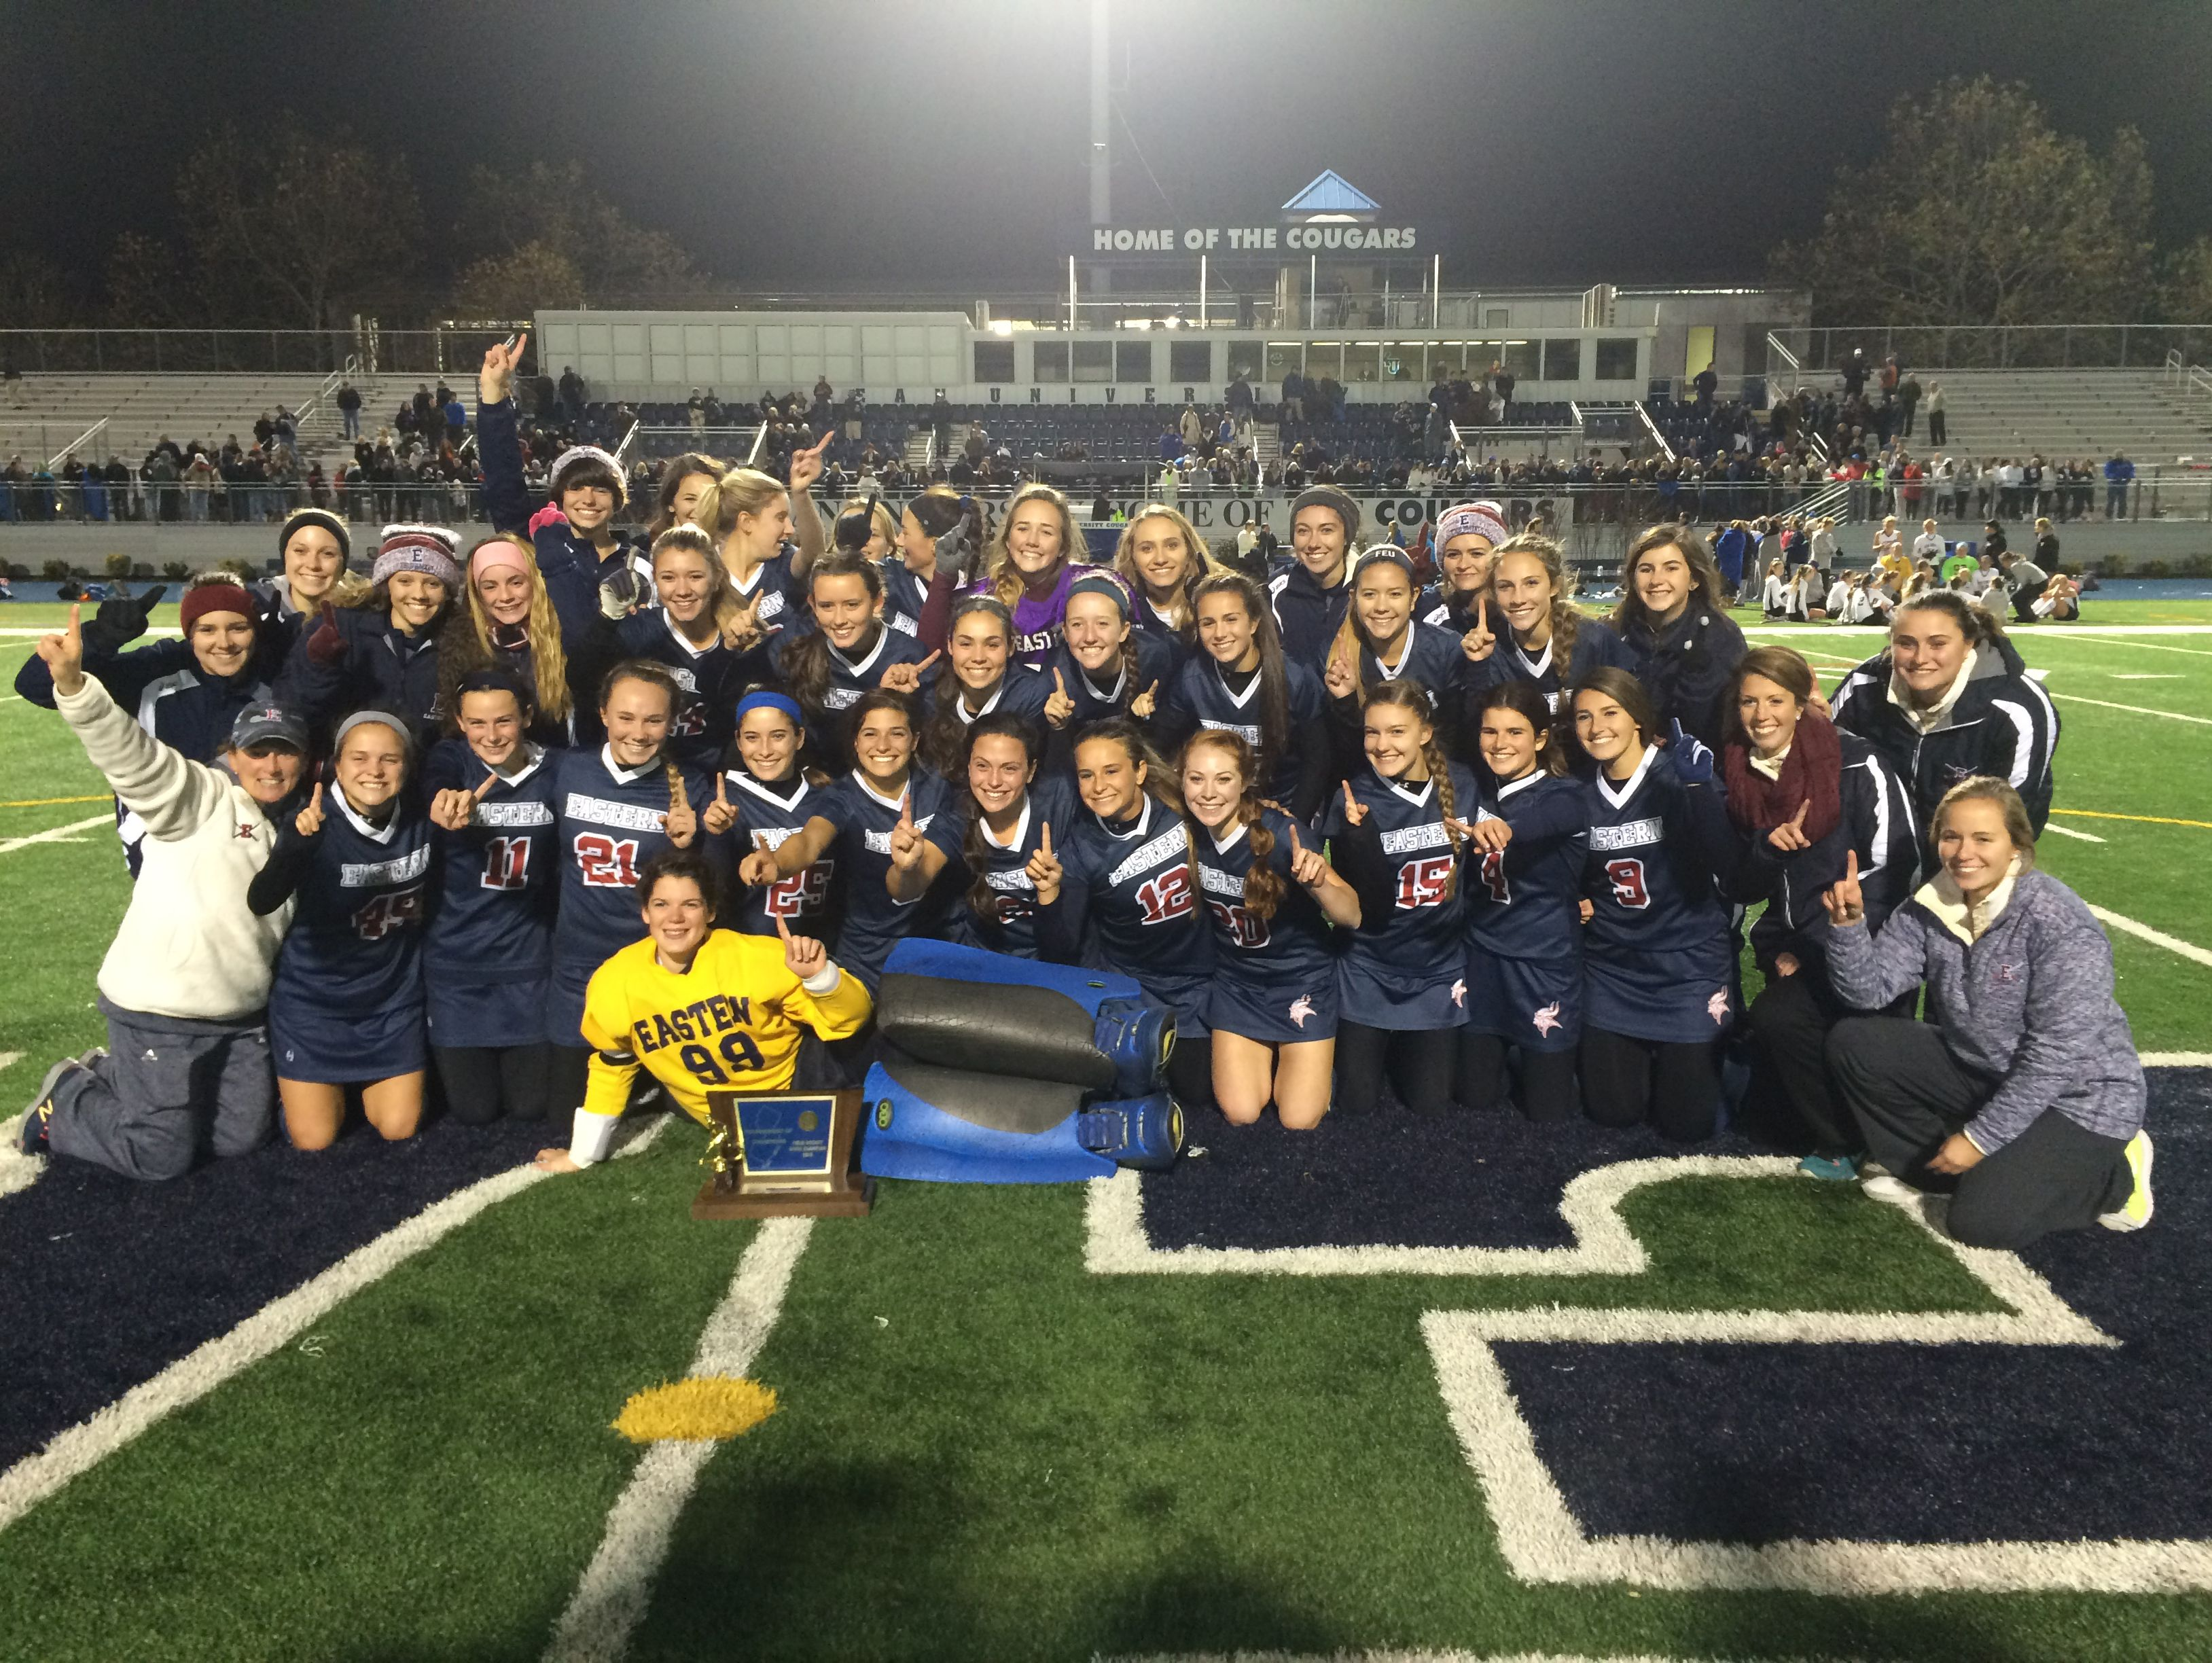 The Eastern High School field hockey team won the title of the Tournament of Champions on Friday